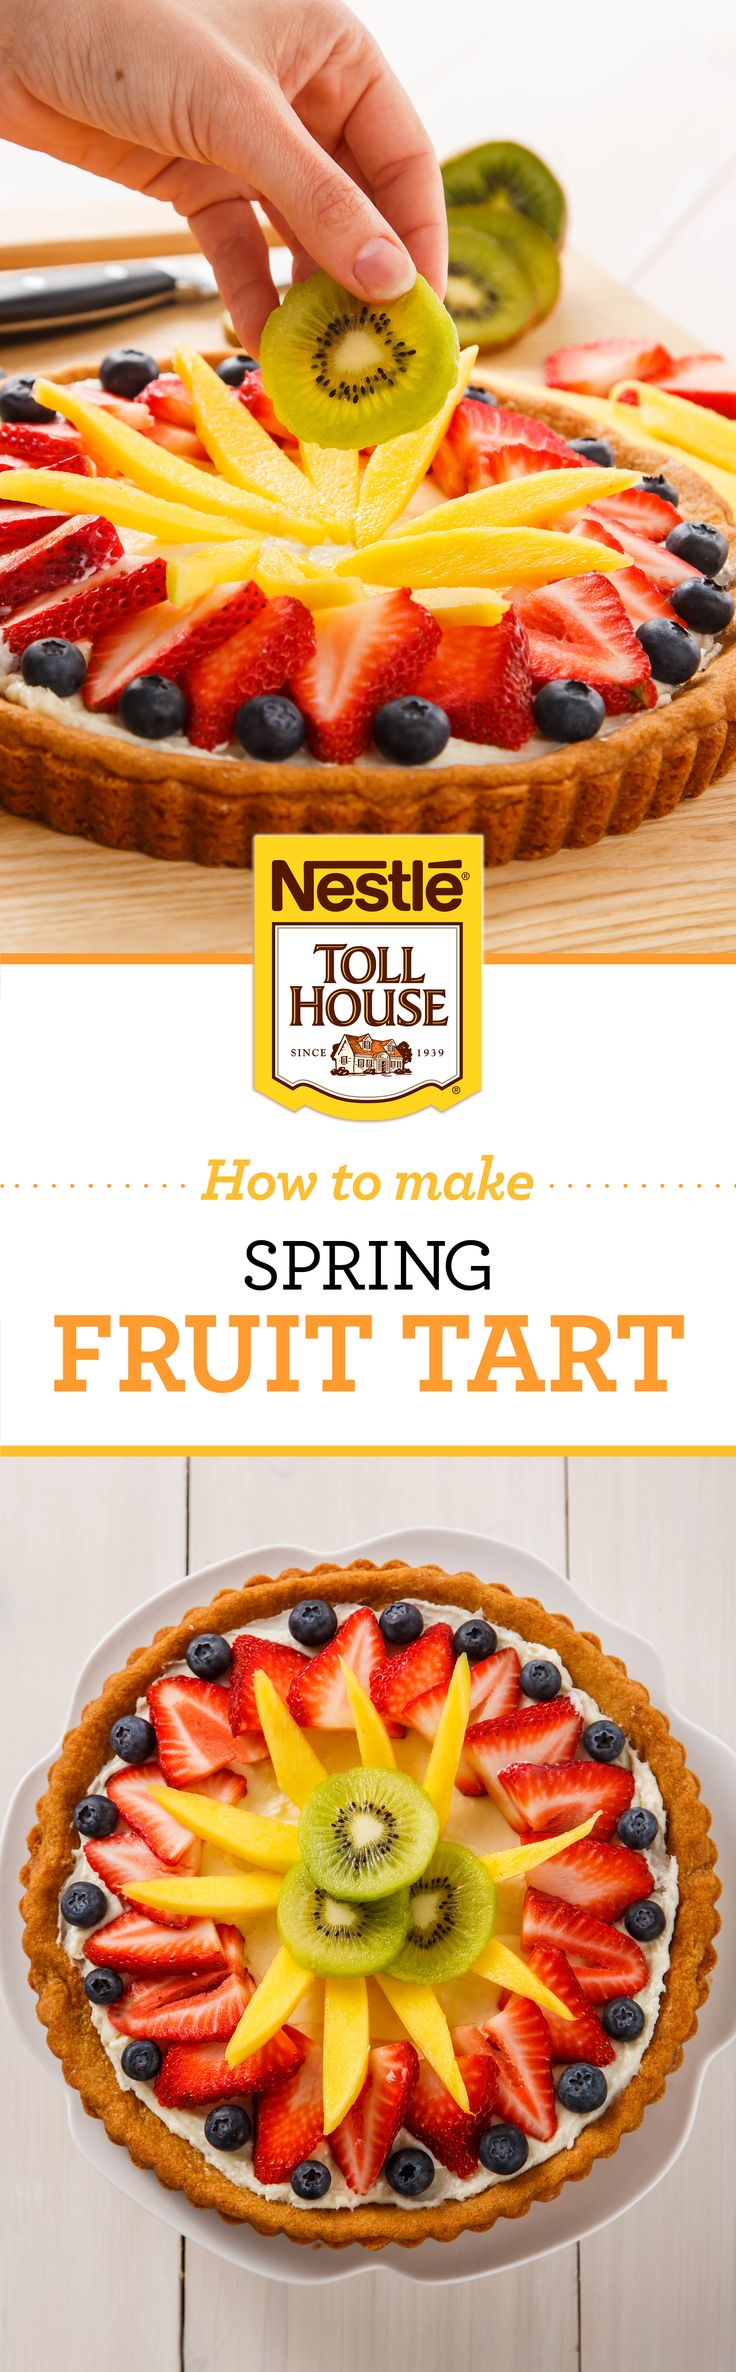 With 5 simple ingredients, you'll have a delicious Spring Fruit Tart in no time! Toll House Refrigerated Sugar Cookie Dough as the crust, cream cheese, sugar, vanilla, and fresh fruit make a tasty Spring time dessert. This dish will is beautiful and tastes great too! Bake this for your next party.